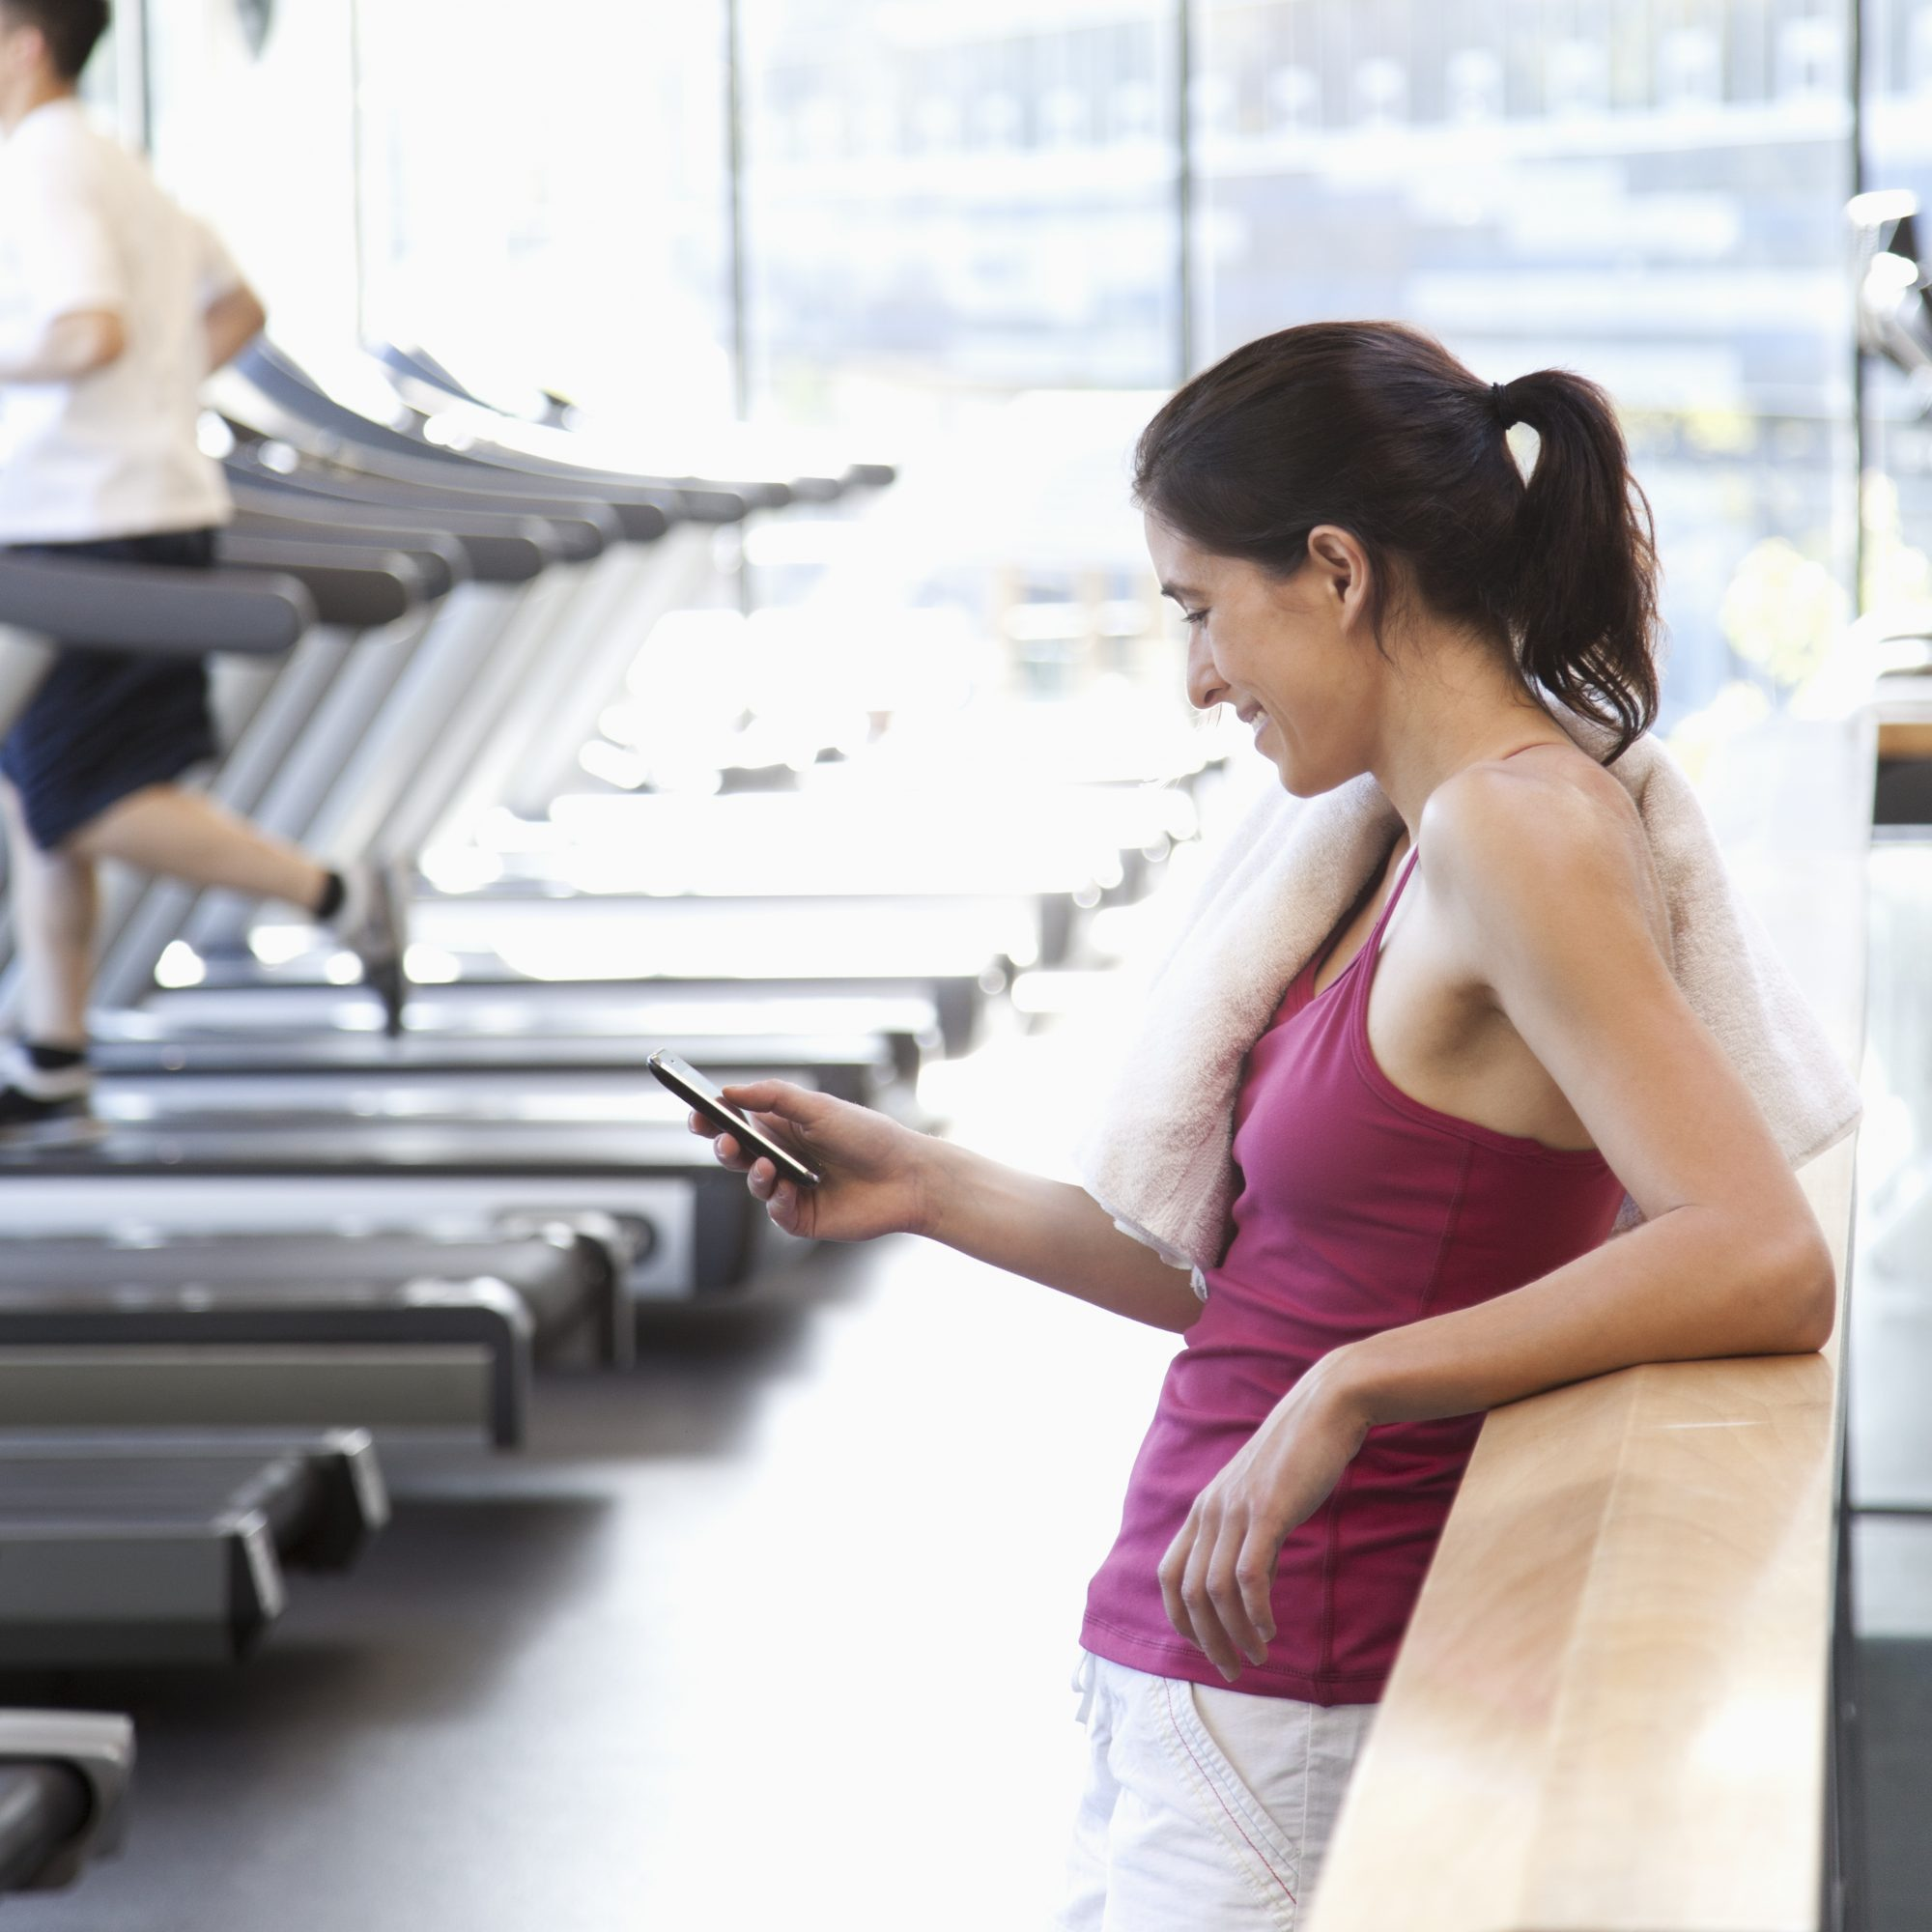 04-start-something-big-gym-texting-workout-exercise